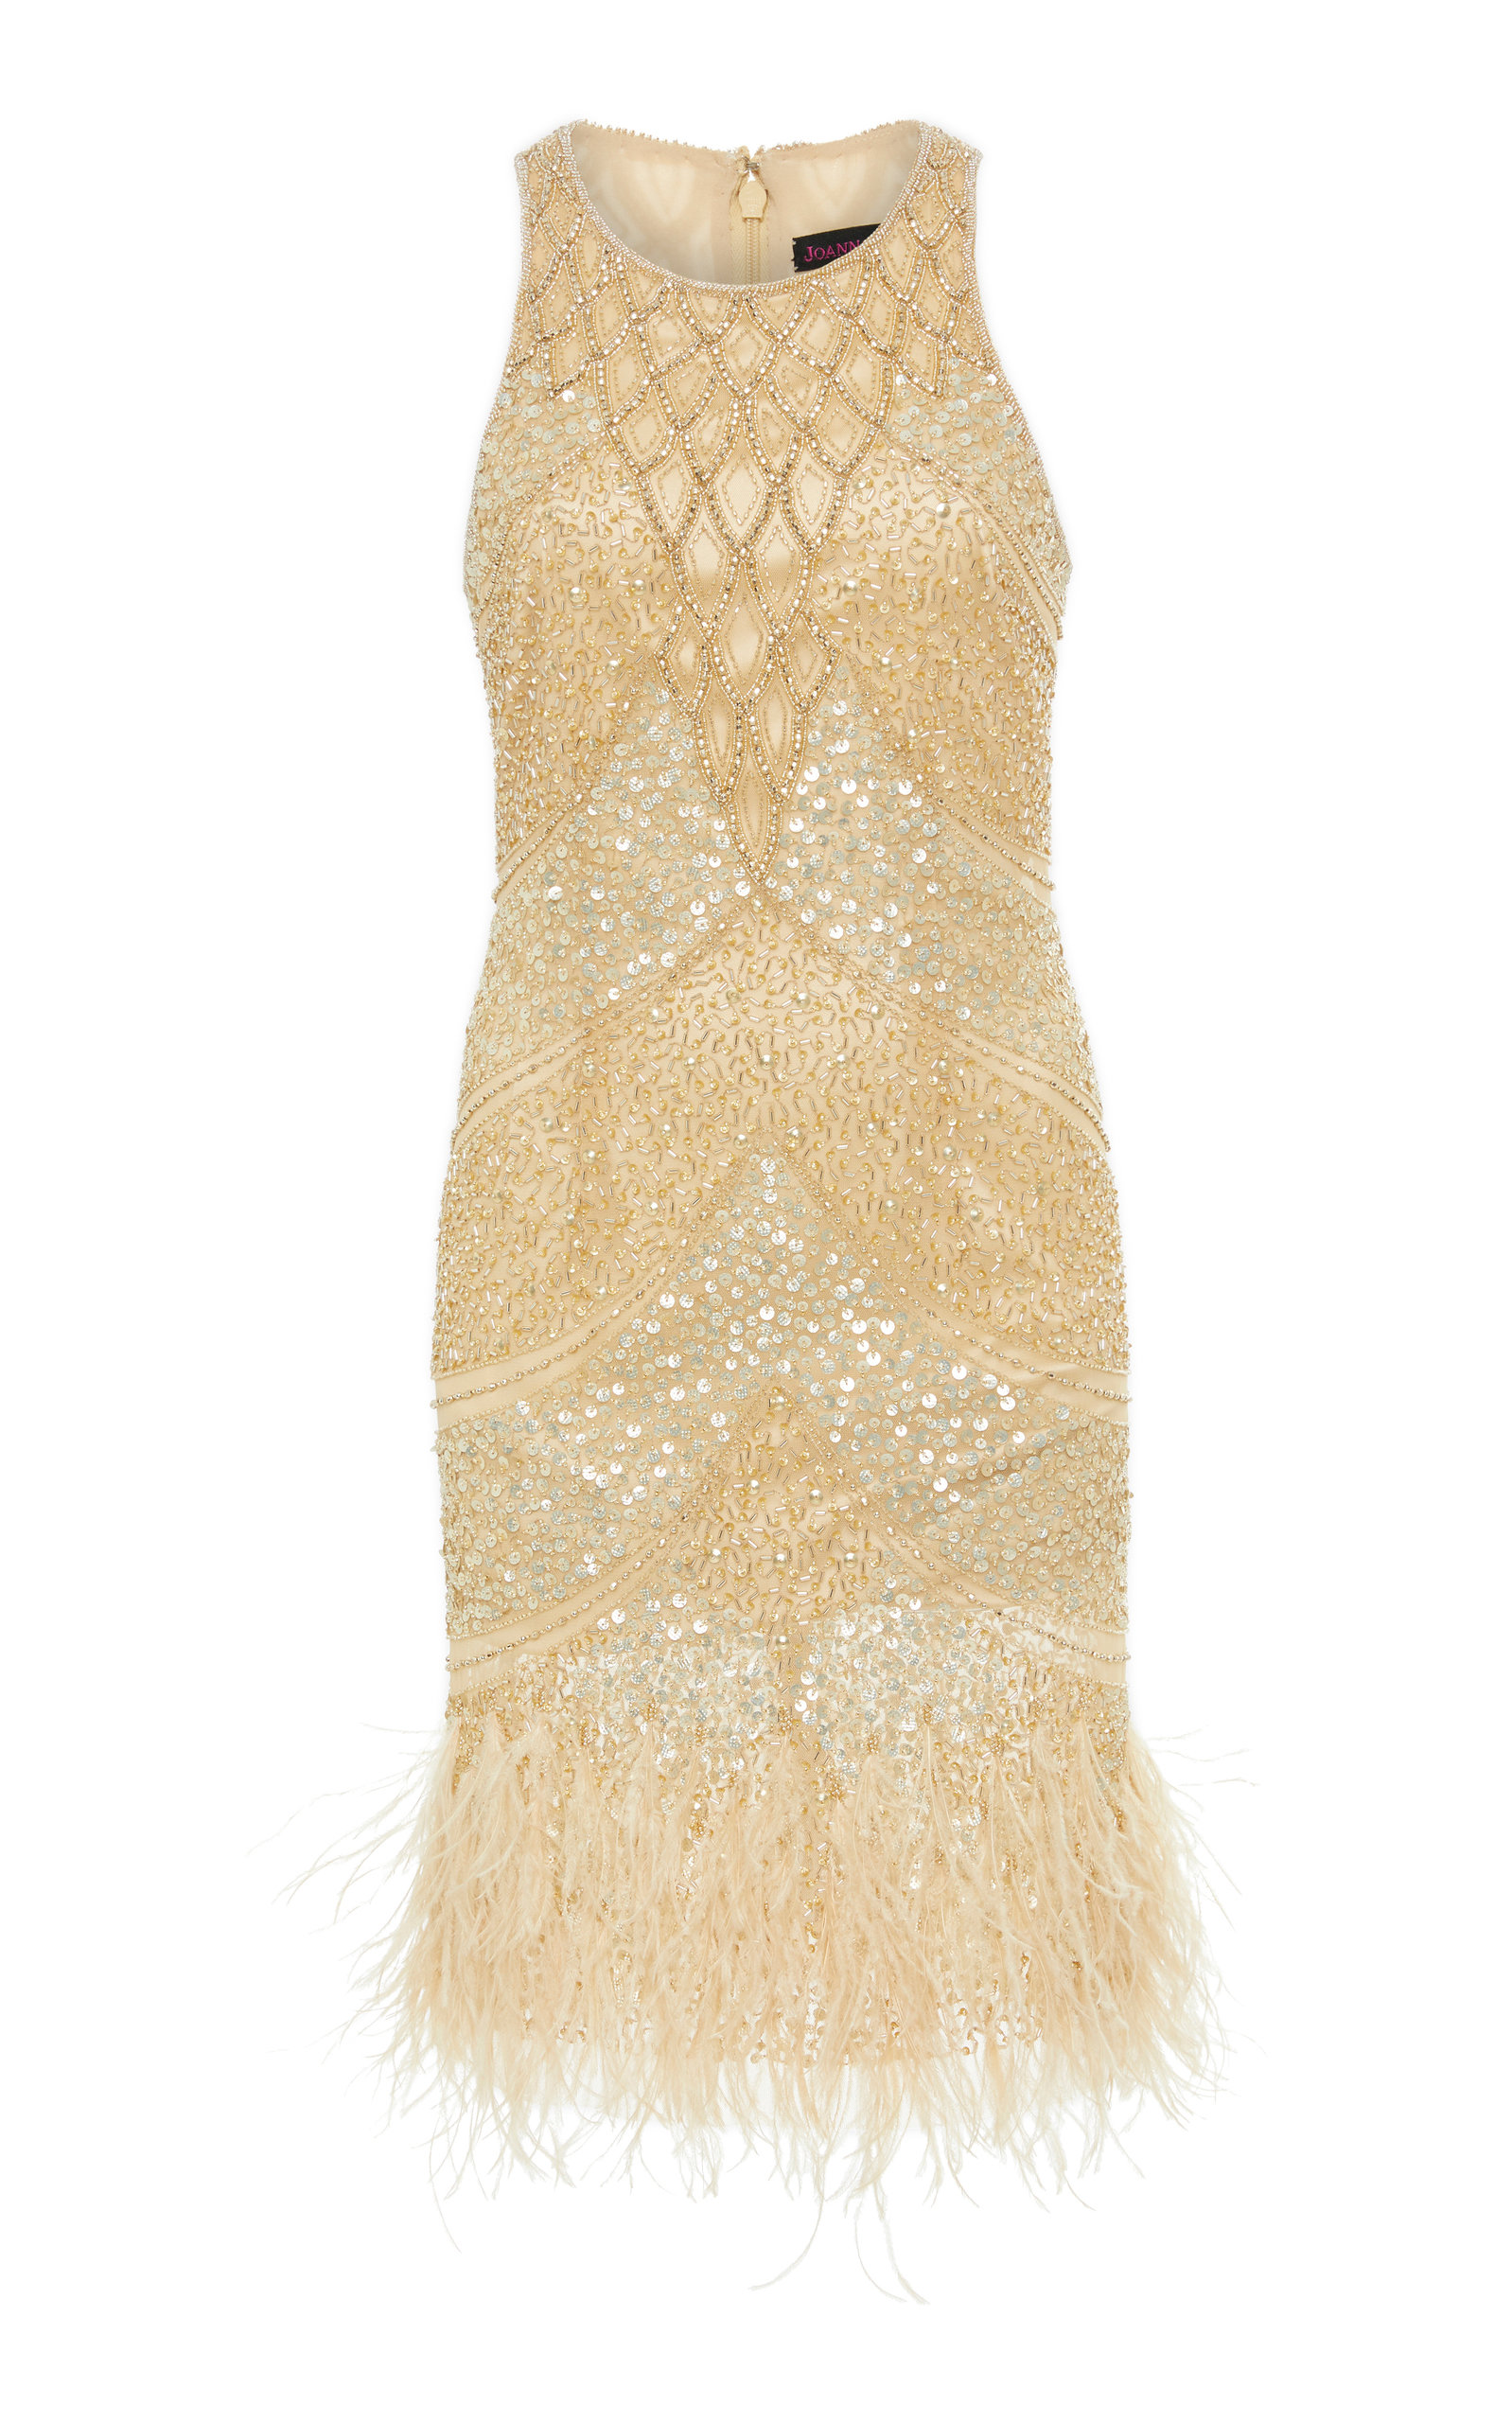 JOANNA MASTROIANNI RACER EMBROIDERED DRESS WITH FEATHERS AT HEM